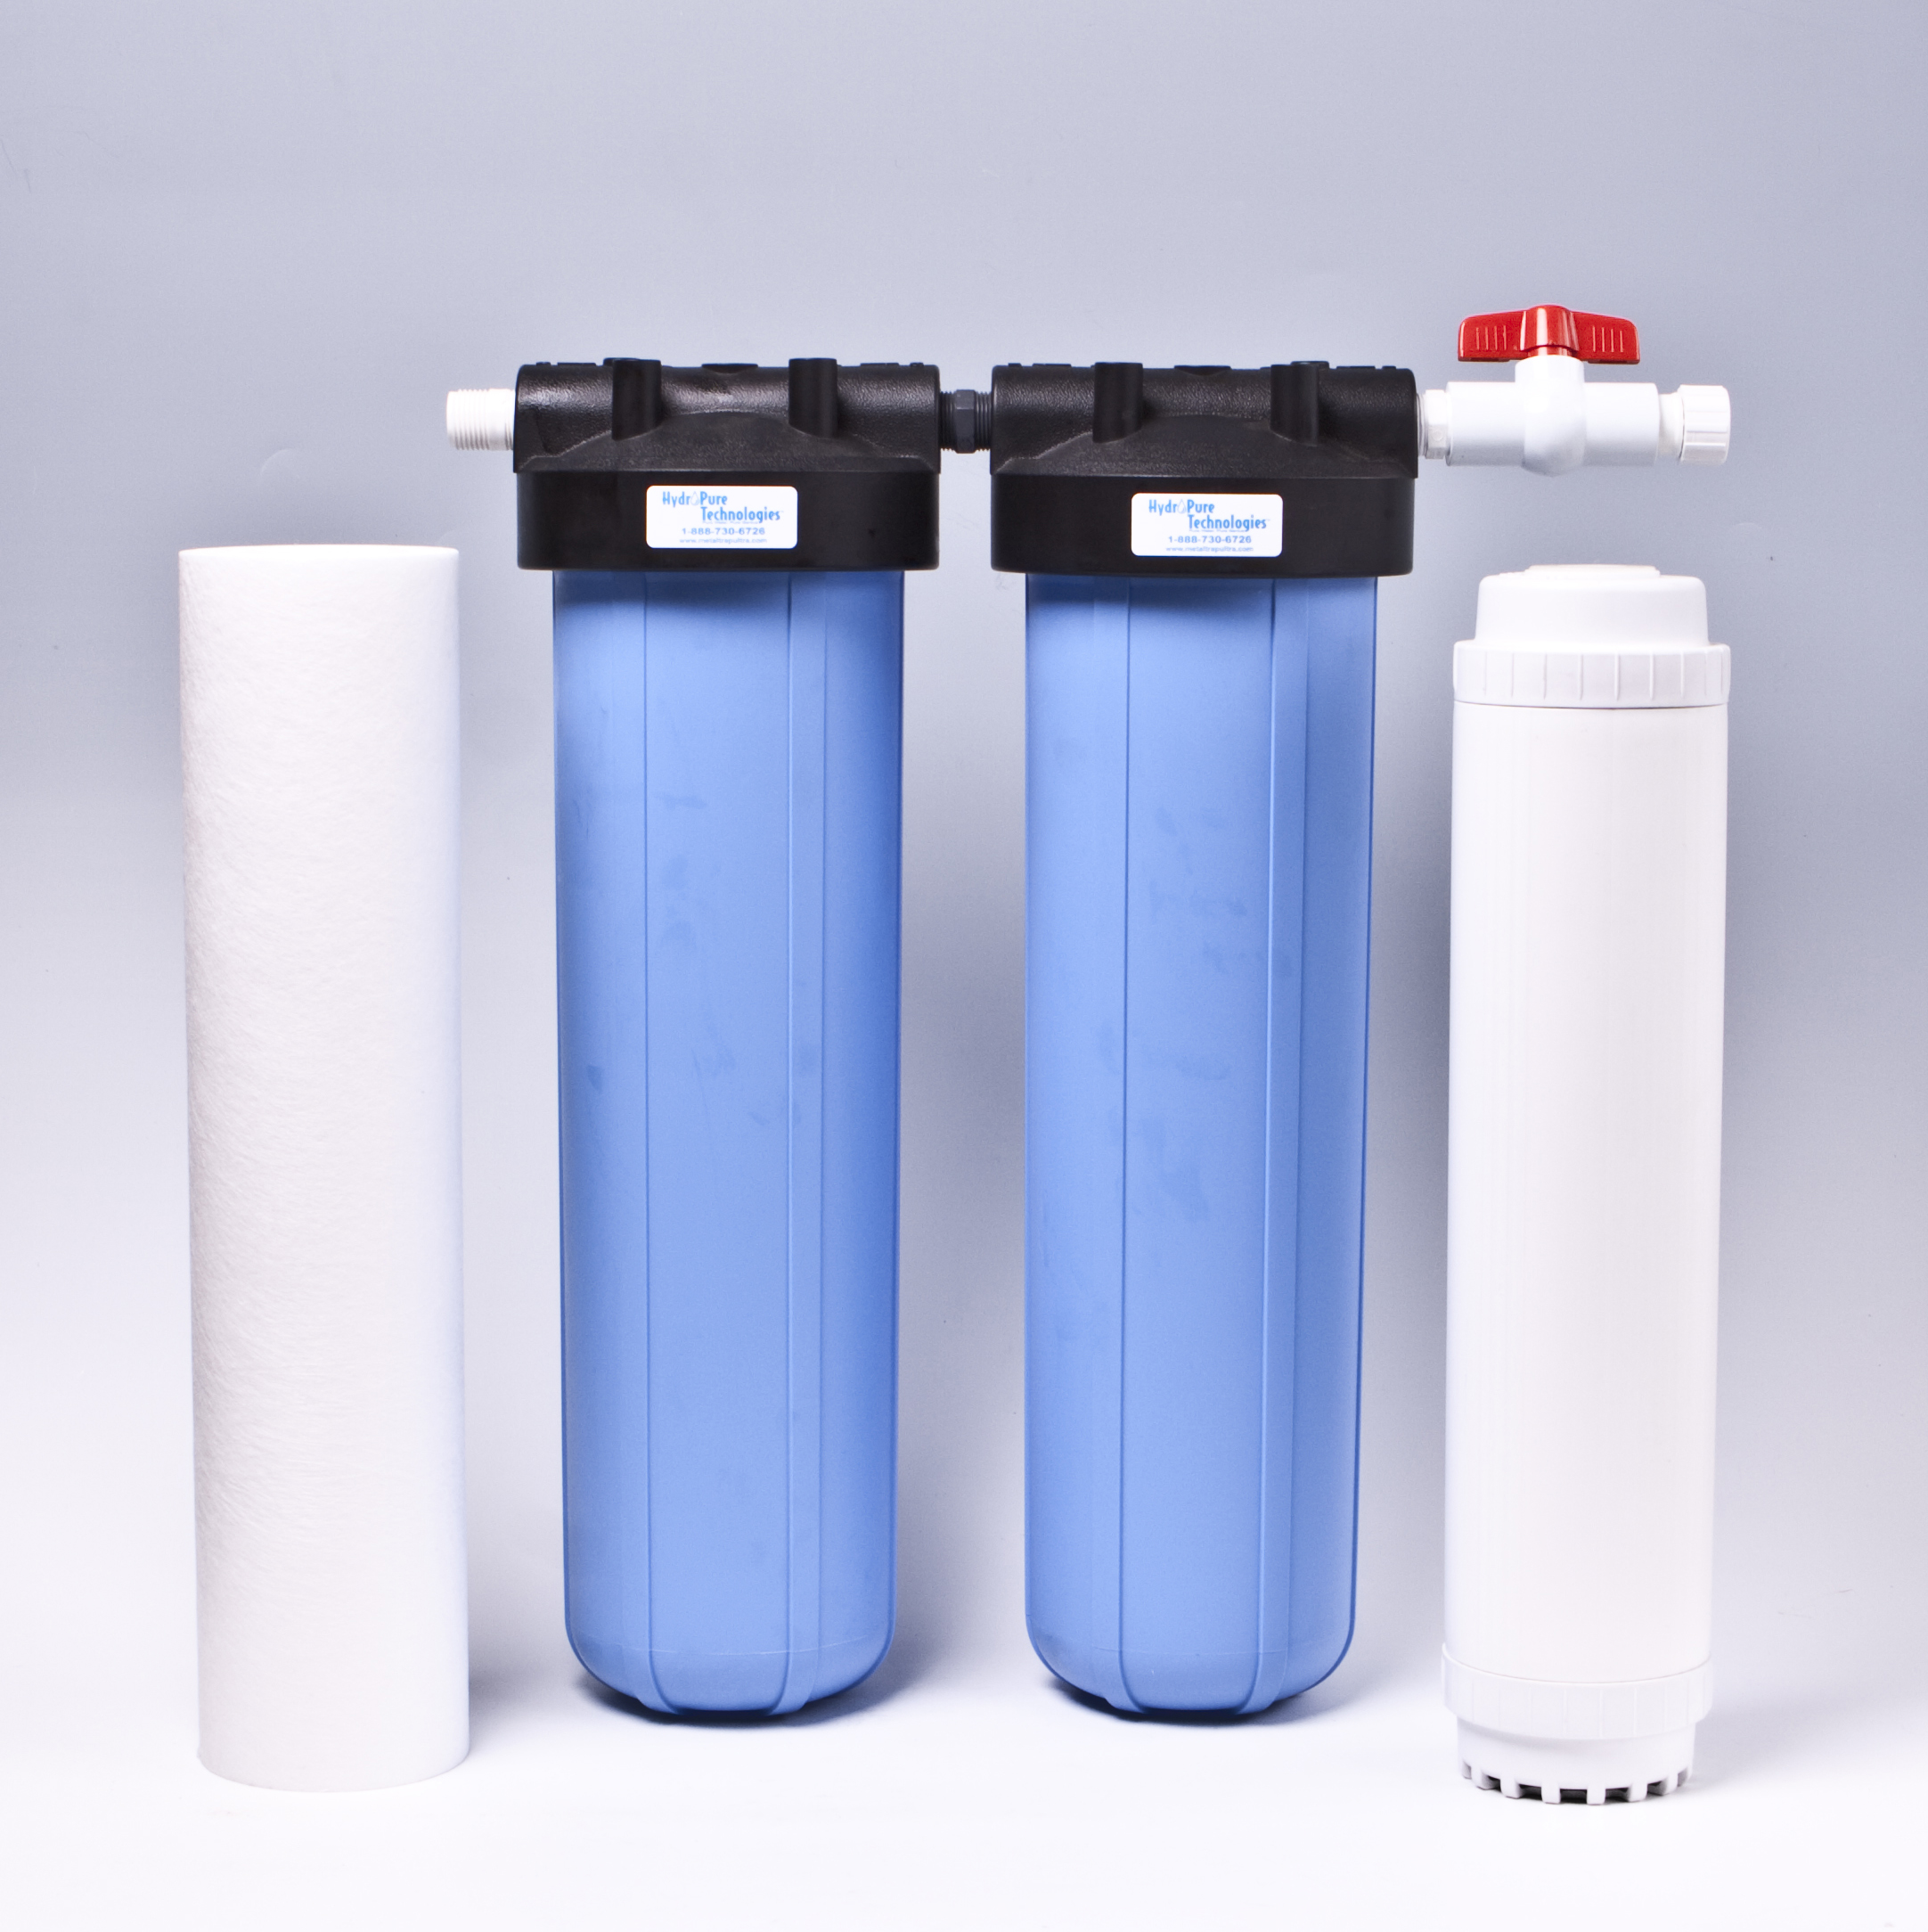 Metaltrap Ultra Dual Filtration System